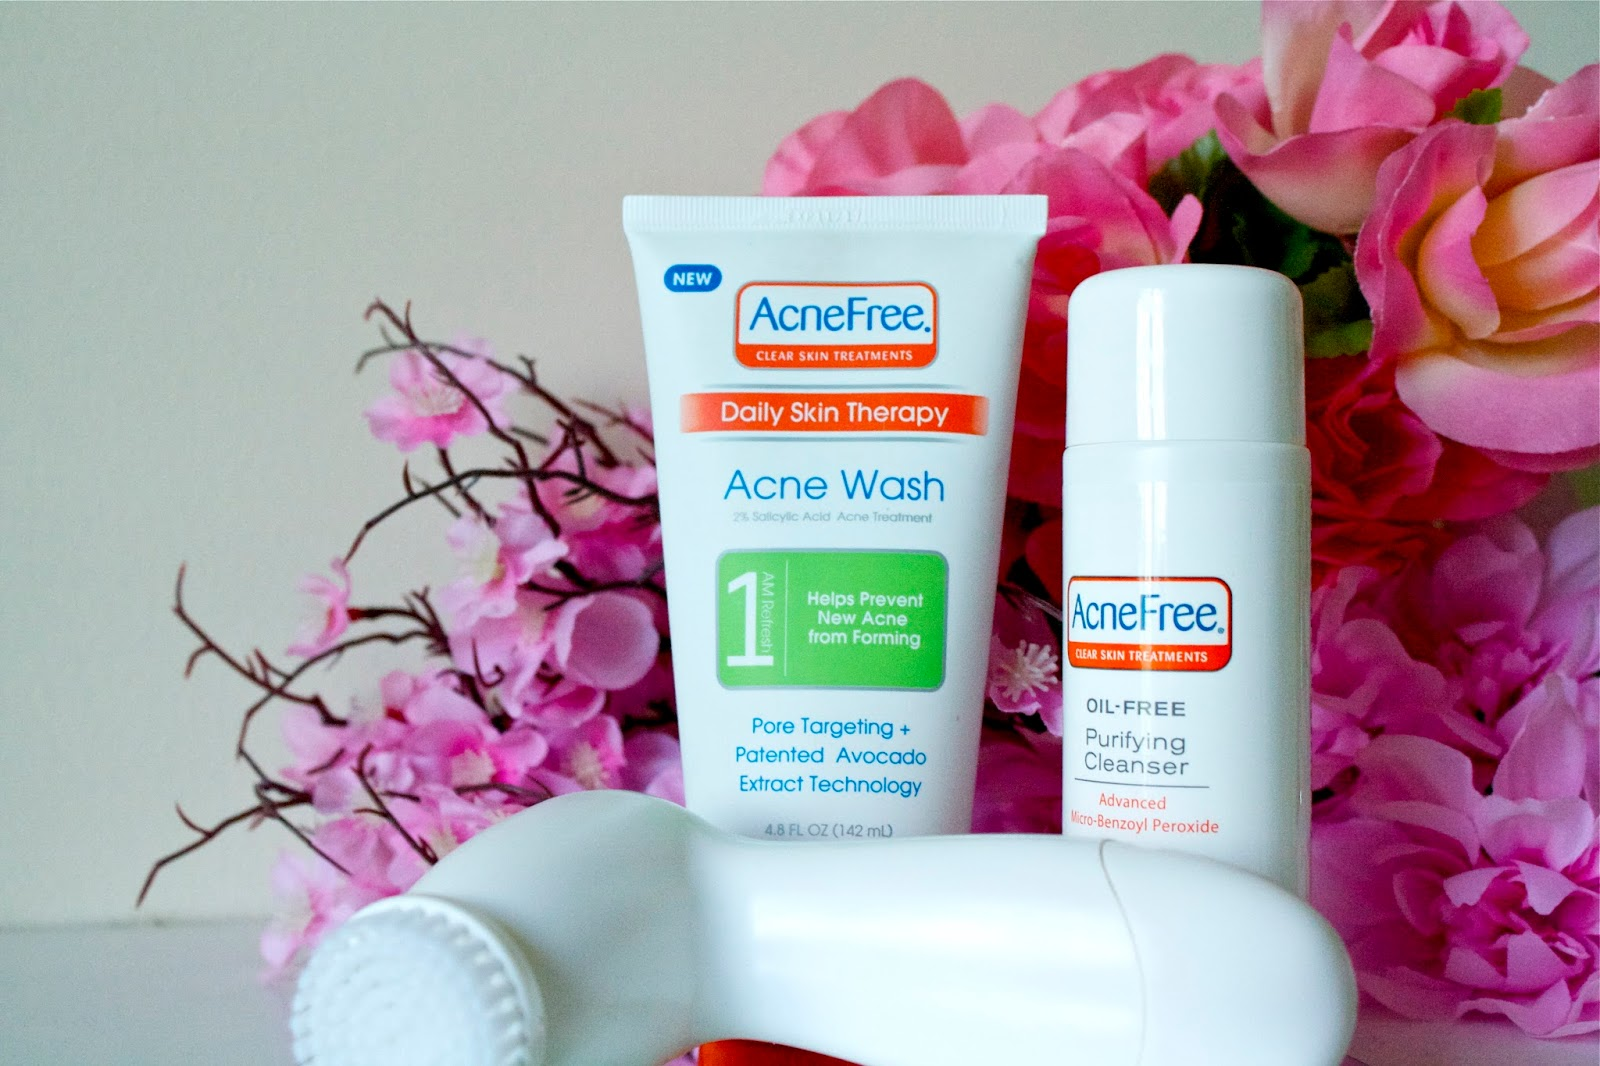 AcneFree skin care products